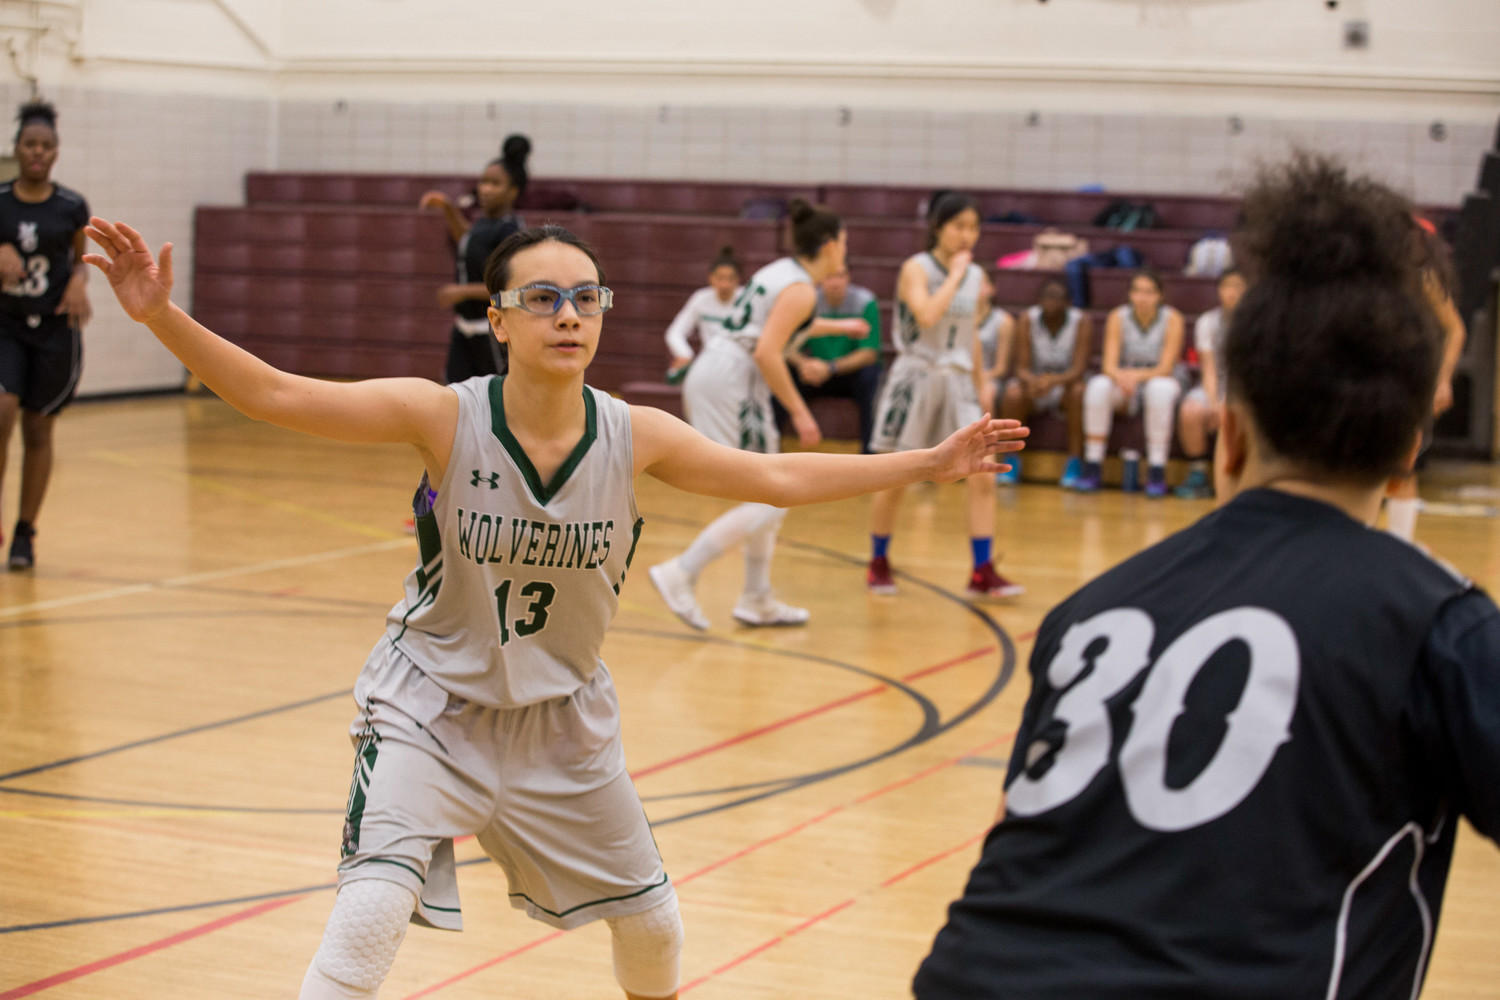 Sarang West, shown here in an earlier game this season, went down with a dislocated thumb in Bronx Science's playoff game with Brooklyn Community, a departure the Wolverines could not overcome in their 65-53 loss.